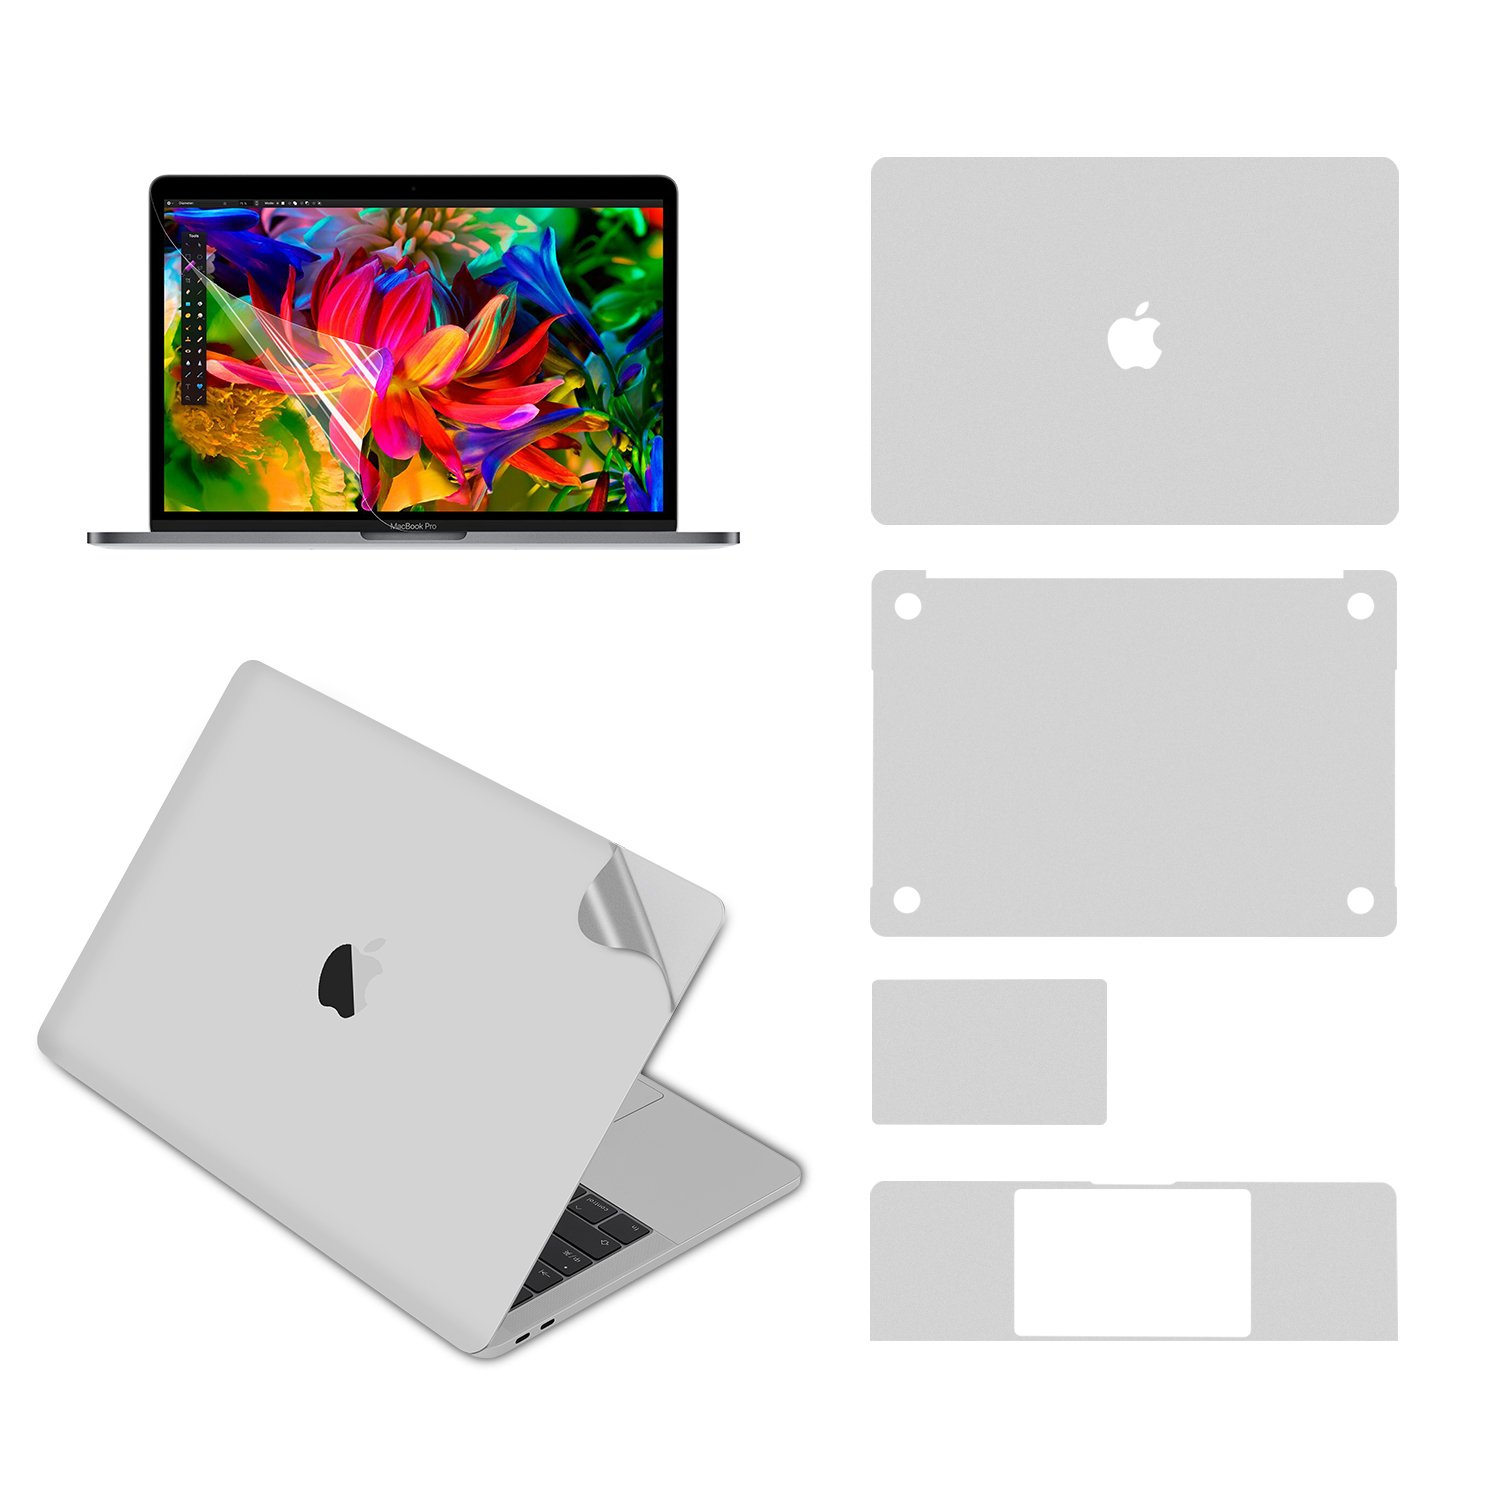 LENTION Full Body Stickers Compatible MacBook Pro (13-inch, 2016-2018 Thunderbolt 3 Ports), Full-Cover Protective Vinyl Decal Skin (Top/Bottom/Touchpad/Palm Rest) + Screen Protector (Silver)